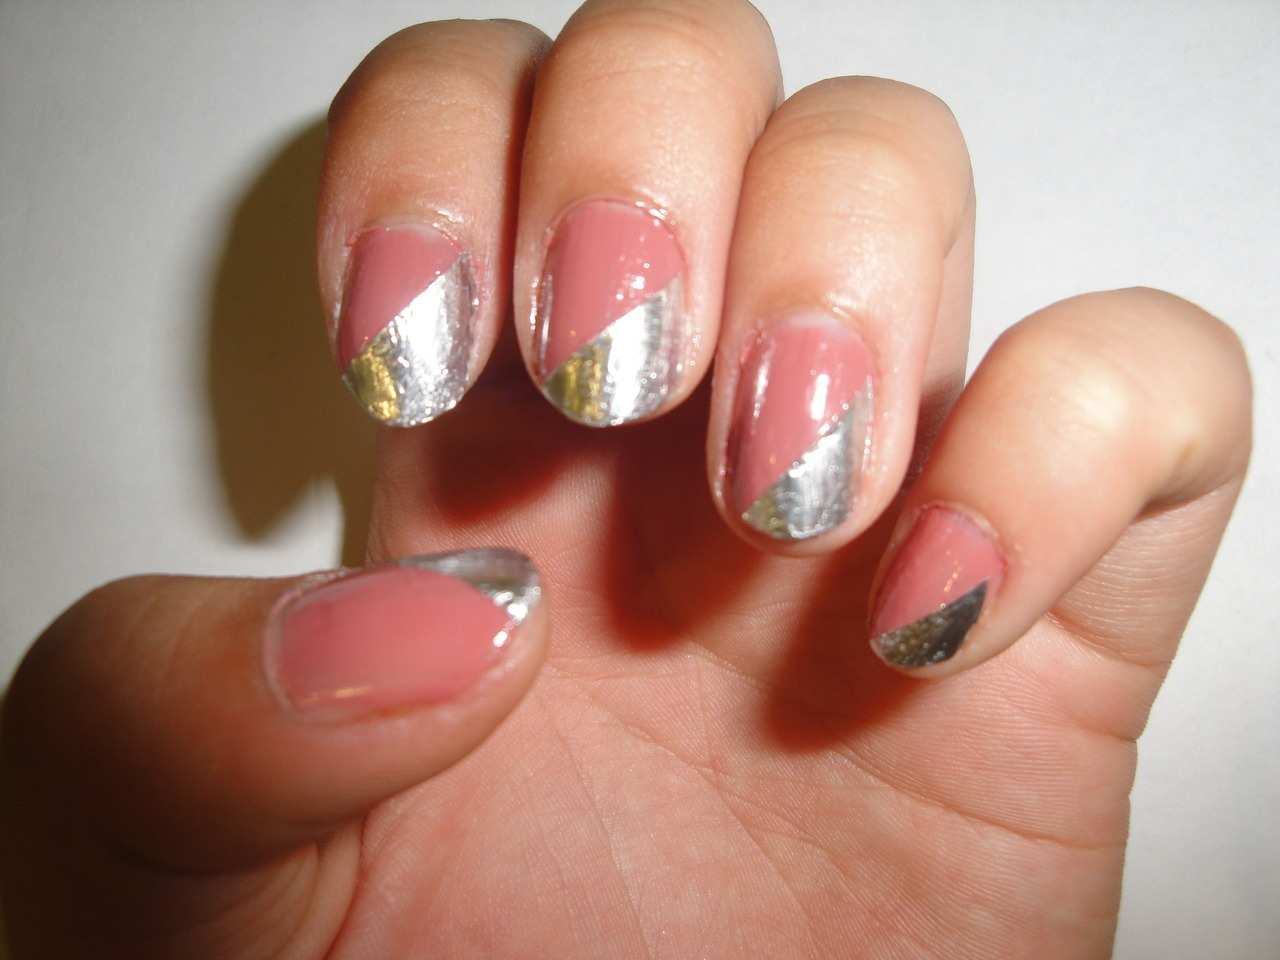 Metallic Detail Nails cath-inthehat.tumblr.com